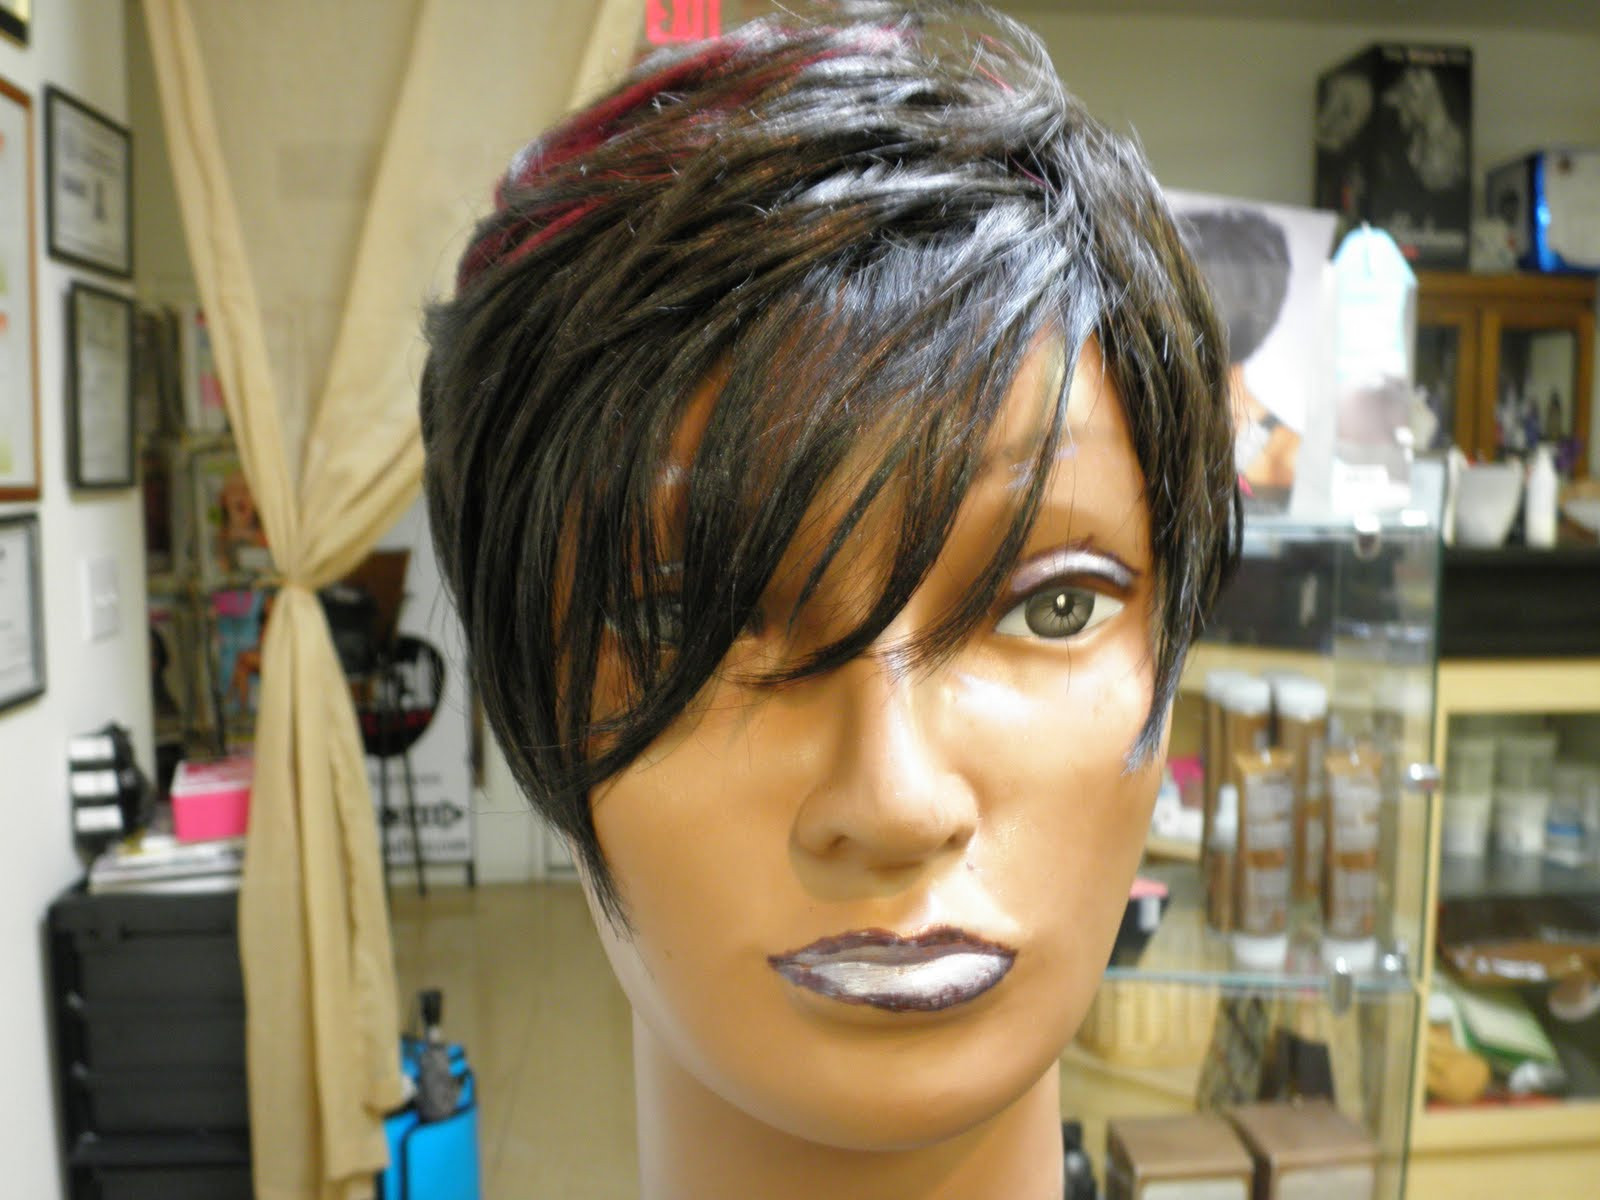 27 Piece Weave Short Hairstyle  27 piece short quick weave hairstyles Hairstyle for